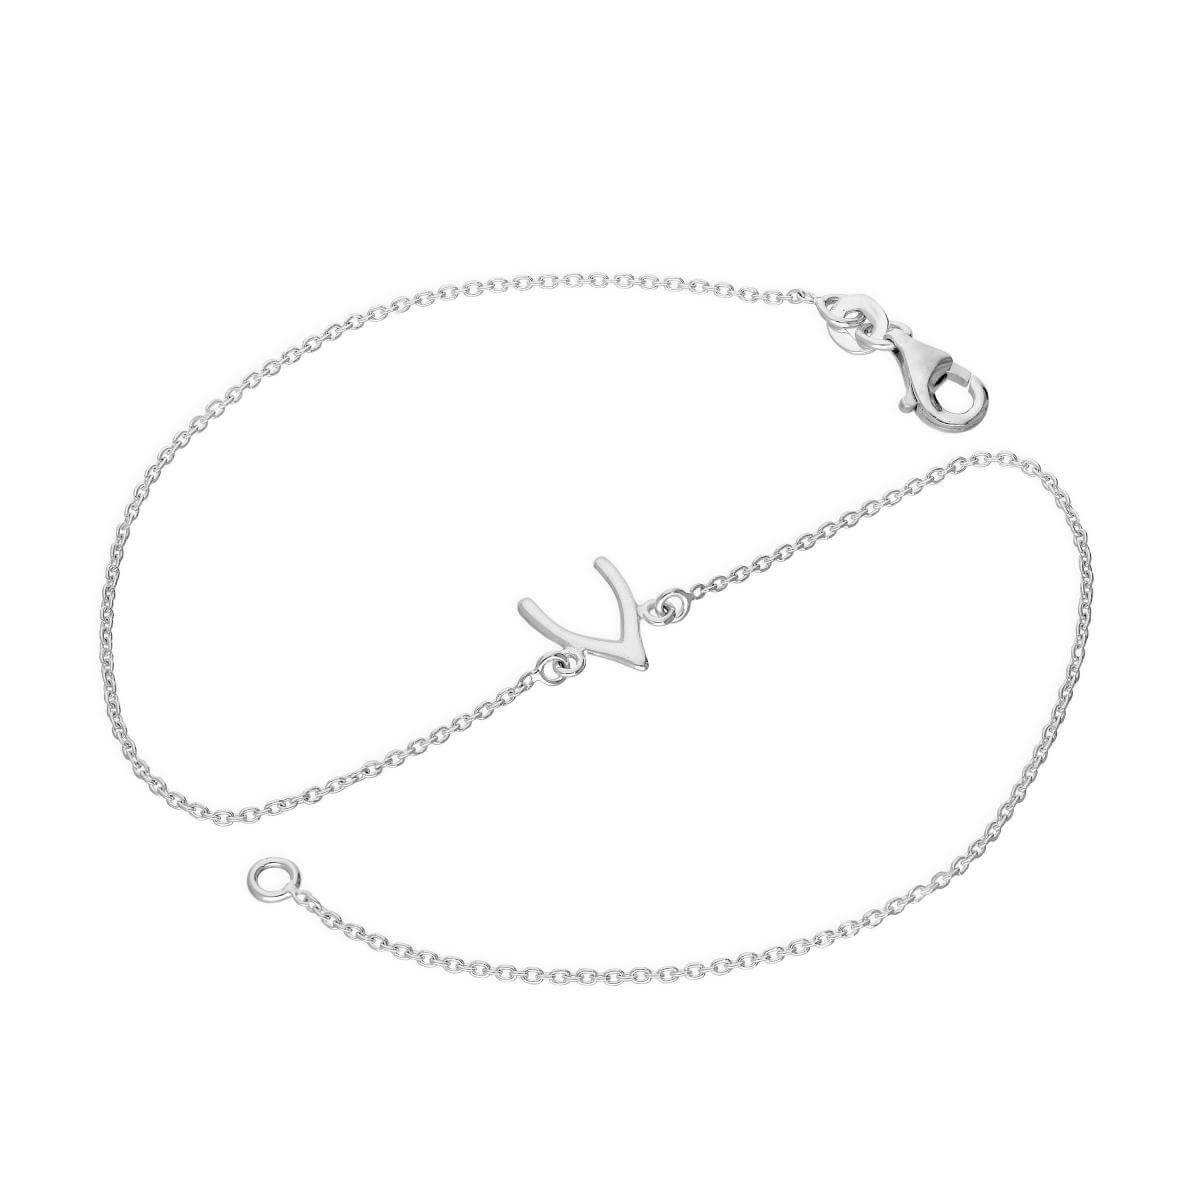 co product silver wishbone anklet inch jewellerybox uk inches sterling har